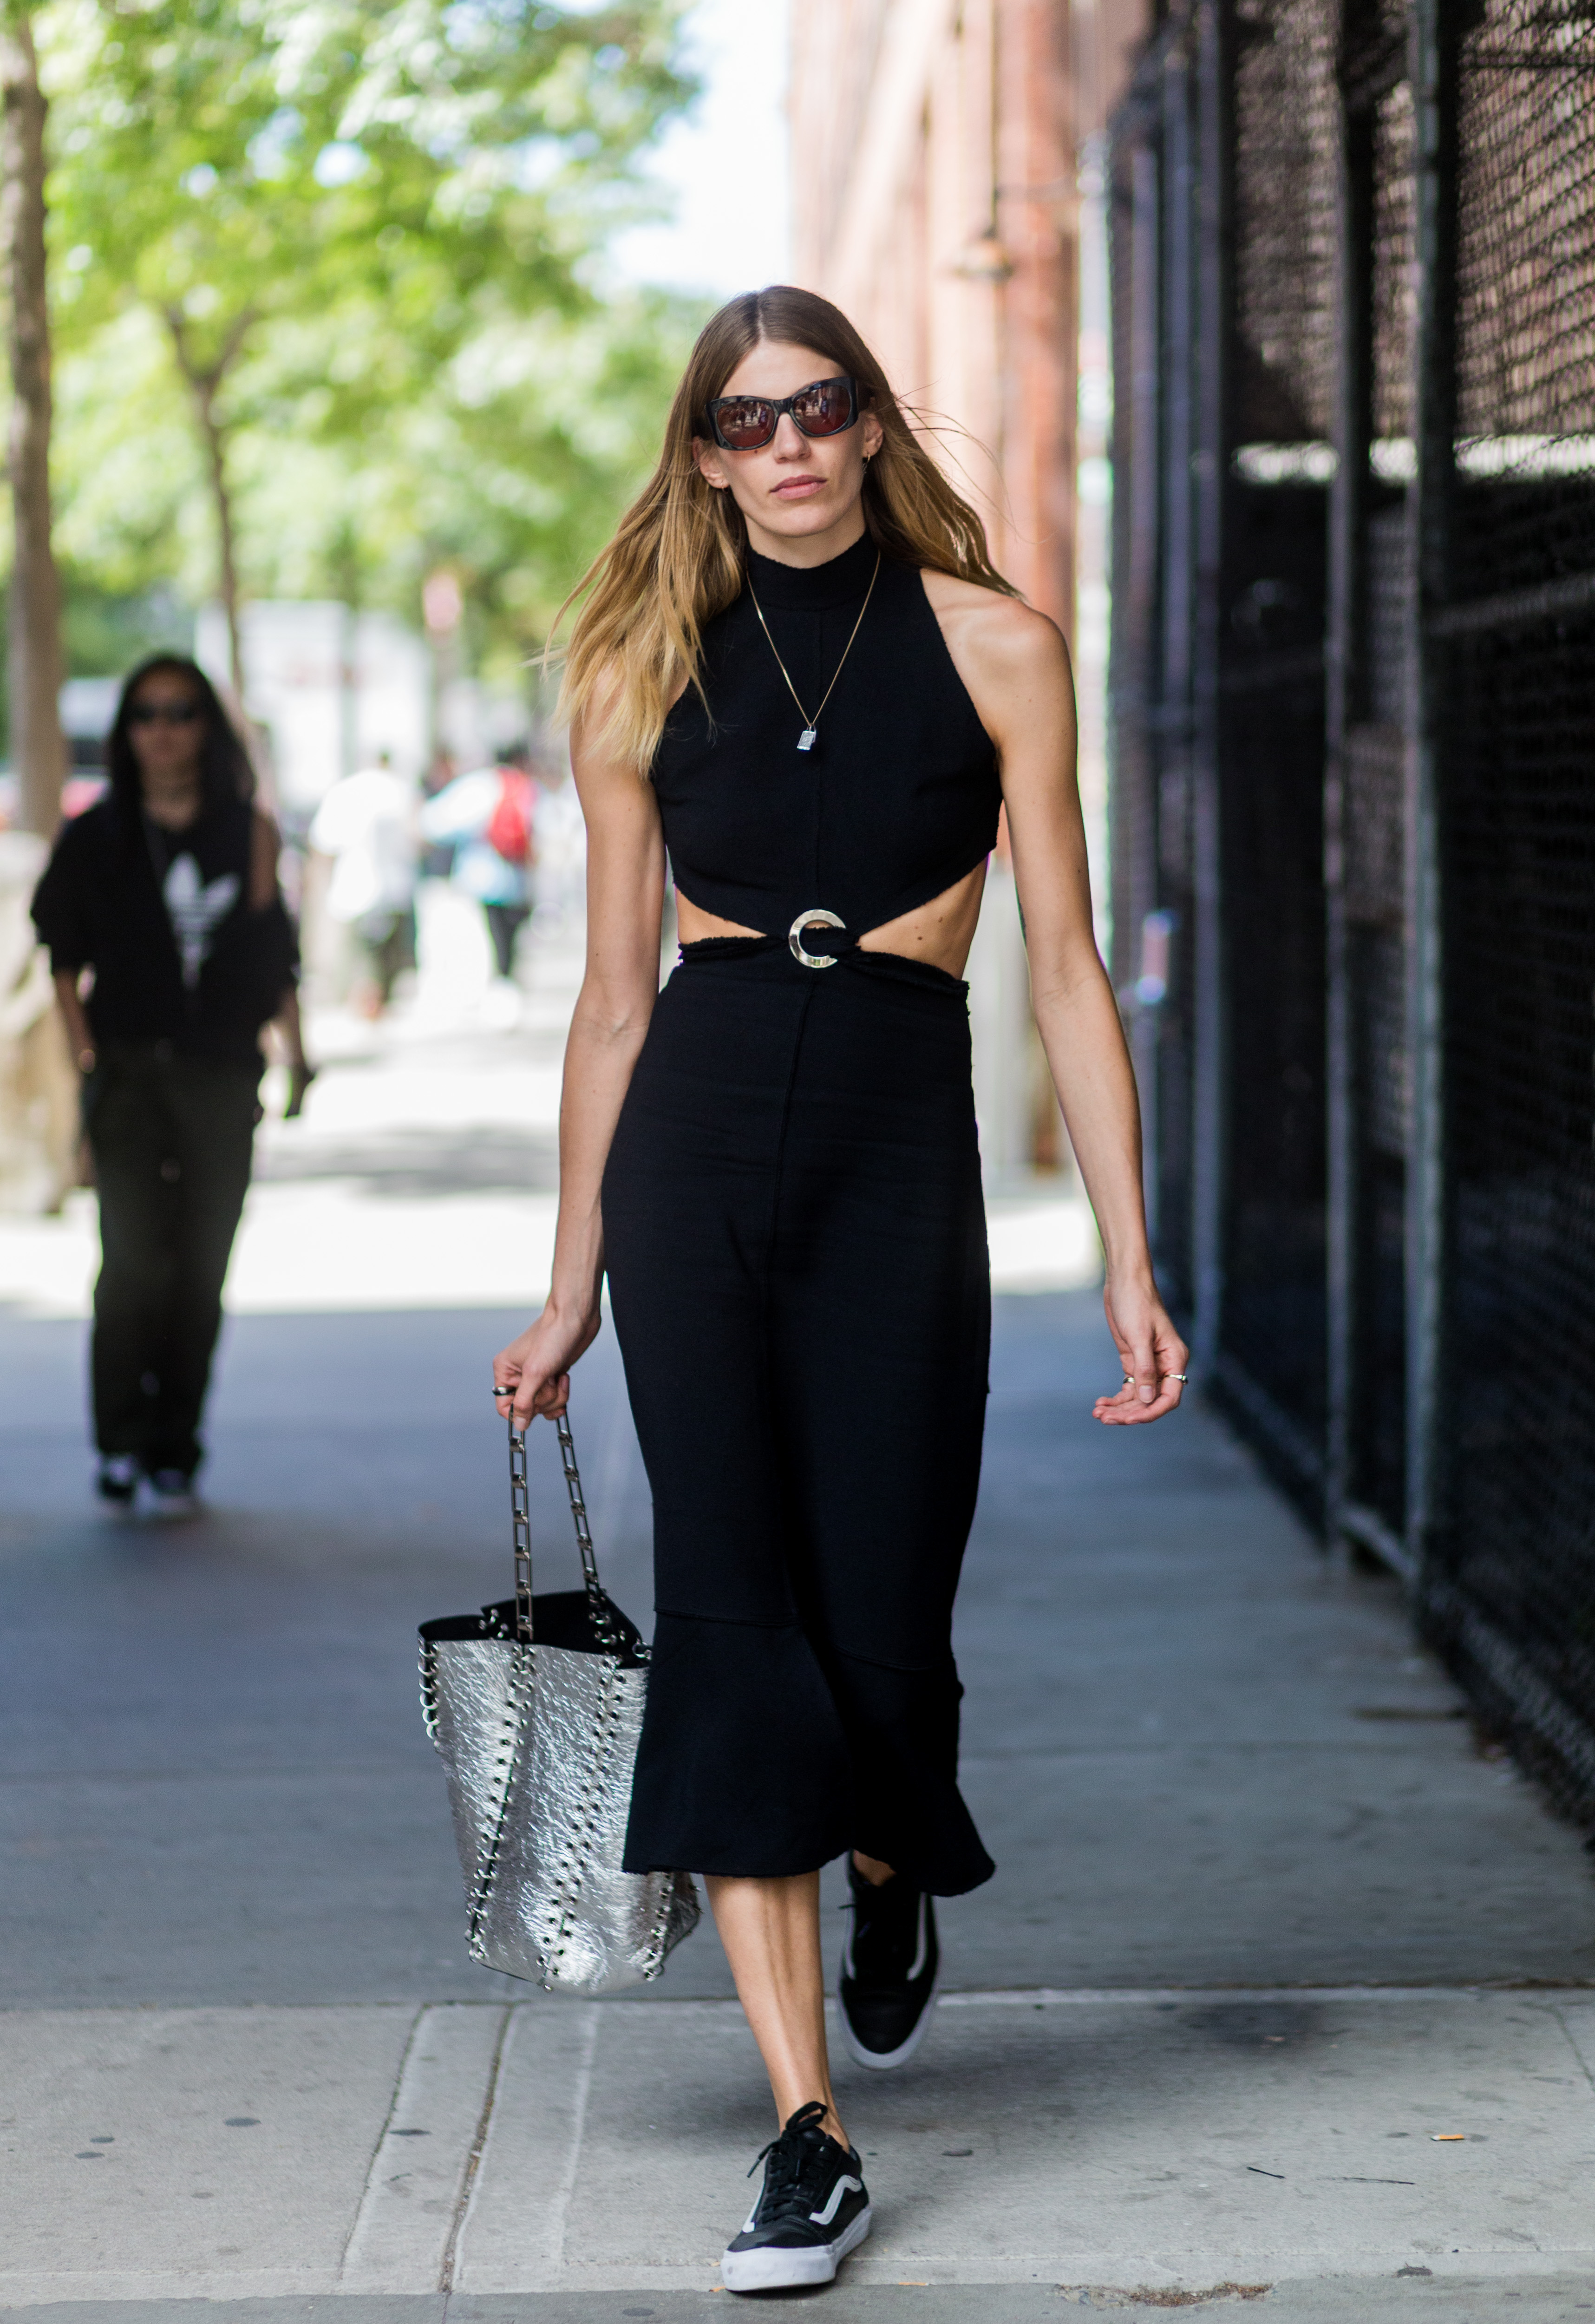 20 Images From Nyfw That Prove Wearing All Black Is Just